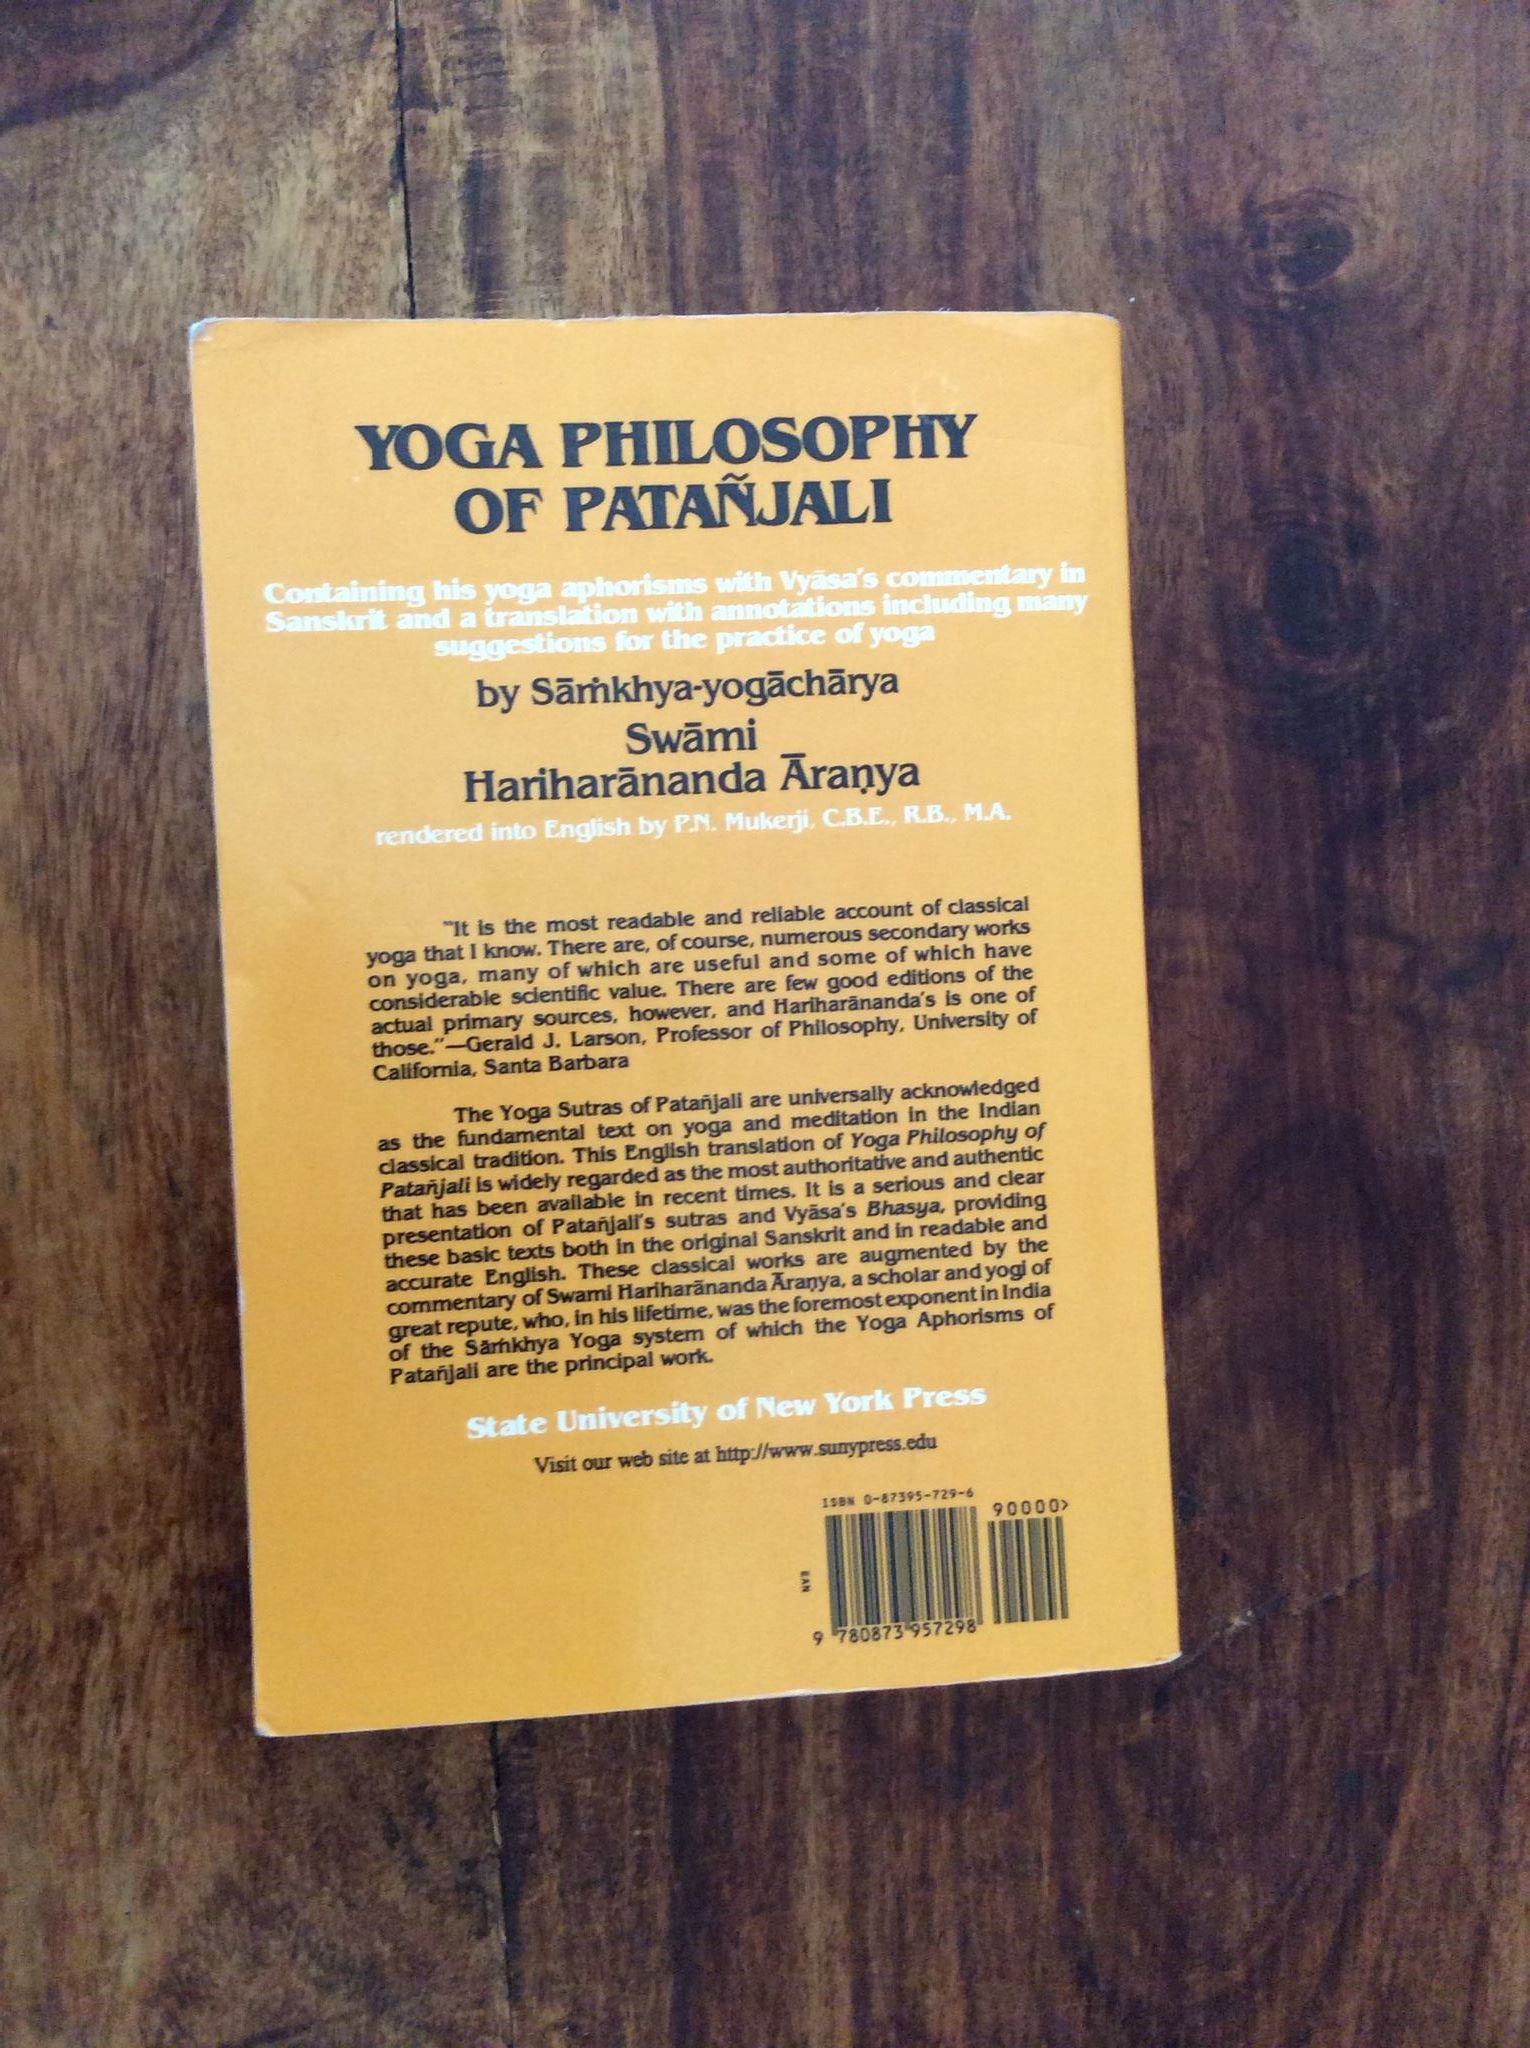 Yoga Philosophy Of Patanjali By Hariharananda Aranya Svastha Yoga Stockholm